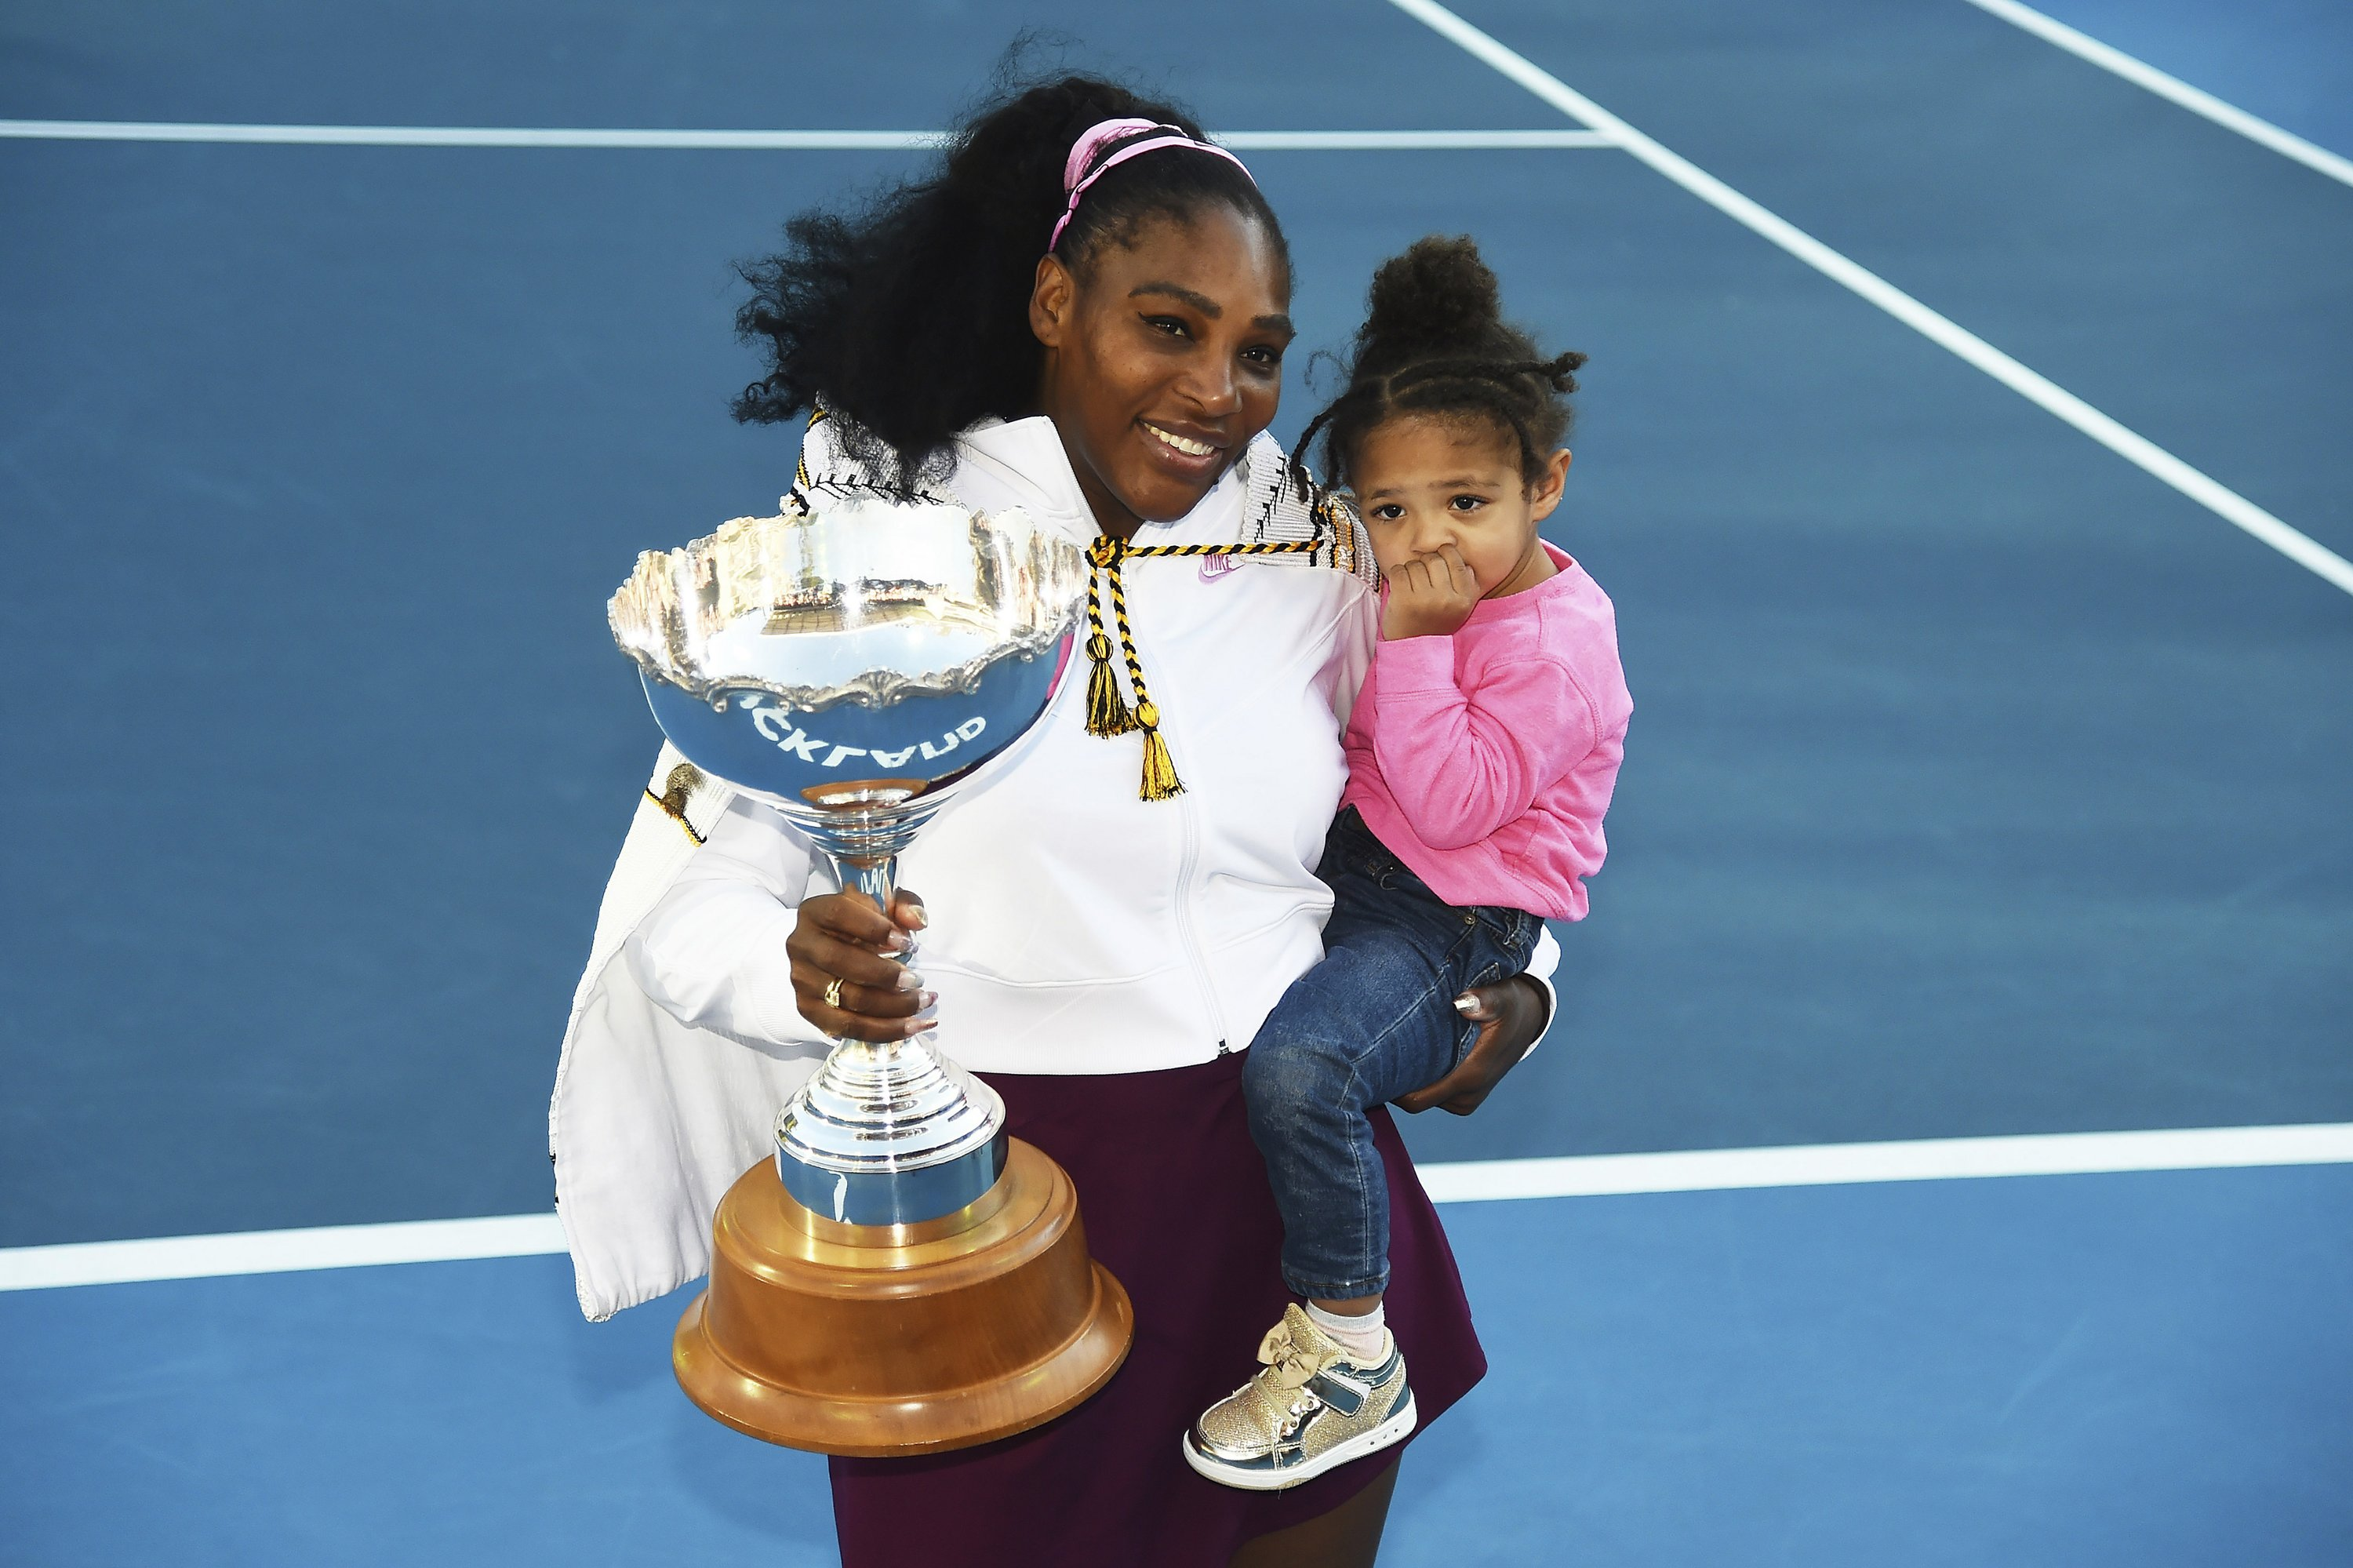 'It feels good': Serena Williams ends 3-year title drought